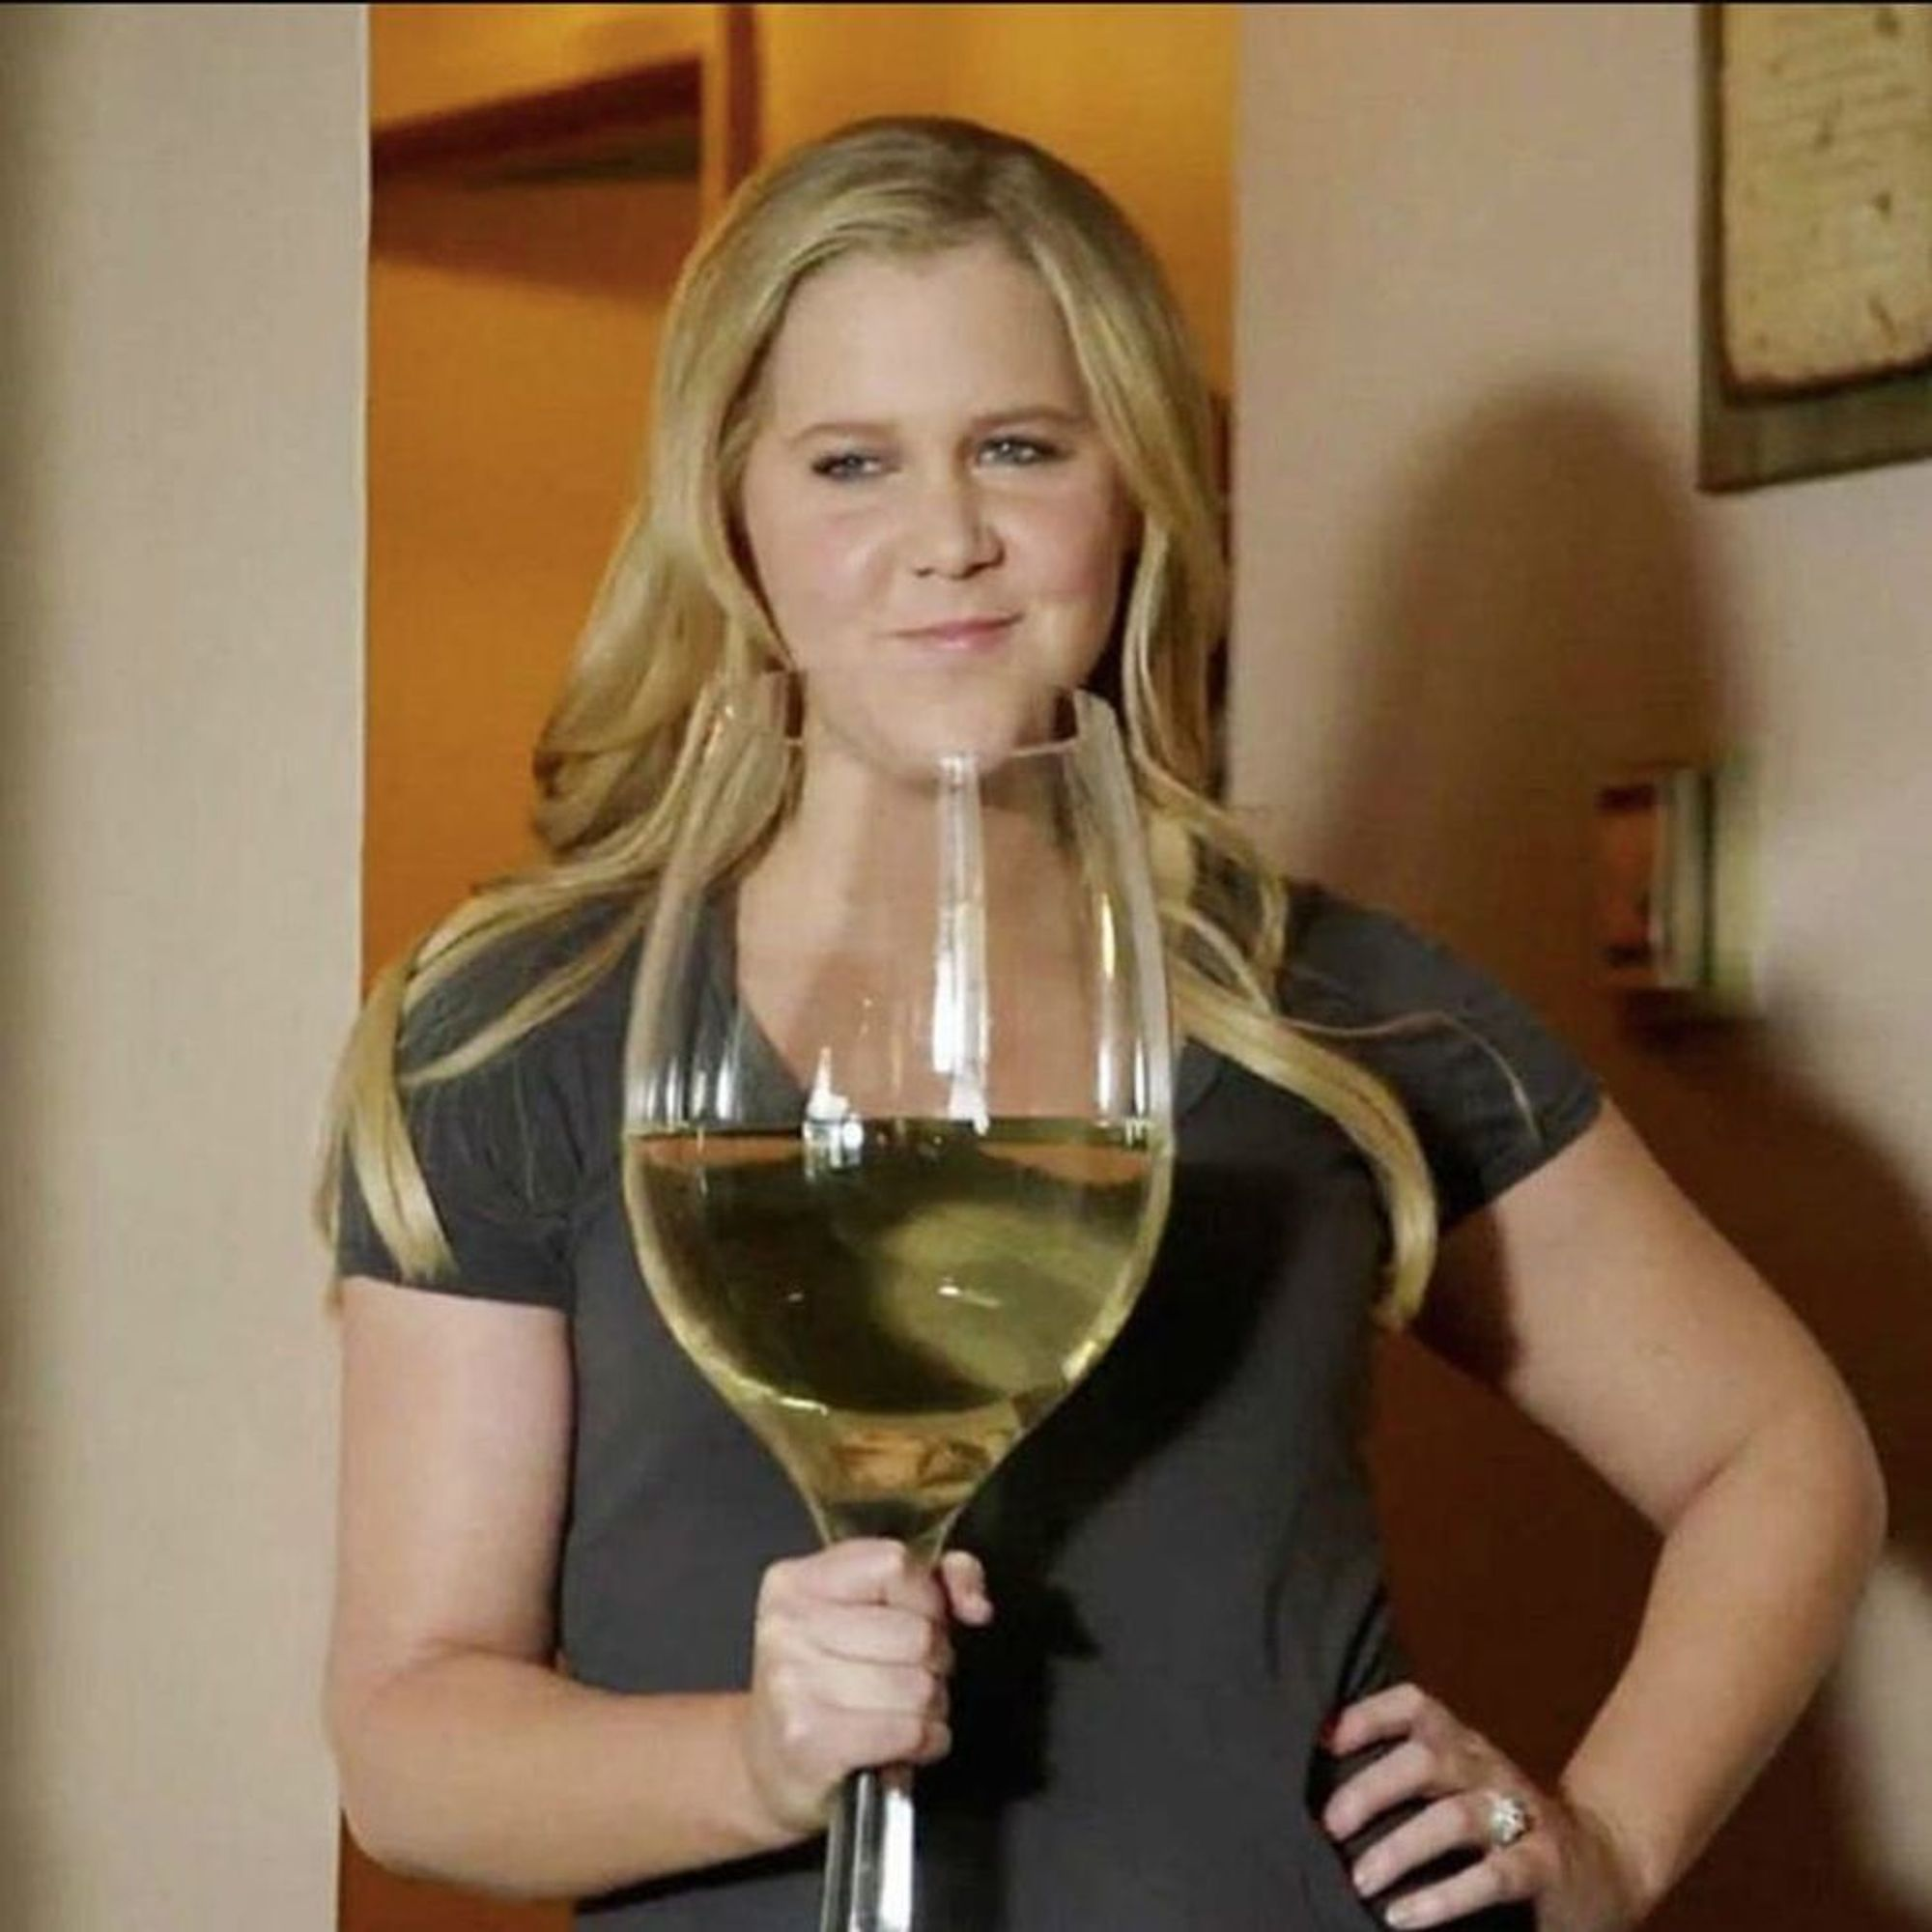 The Pop Culture Wine Mom Is Hilarious Relatable And A